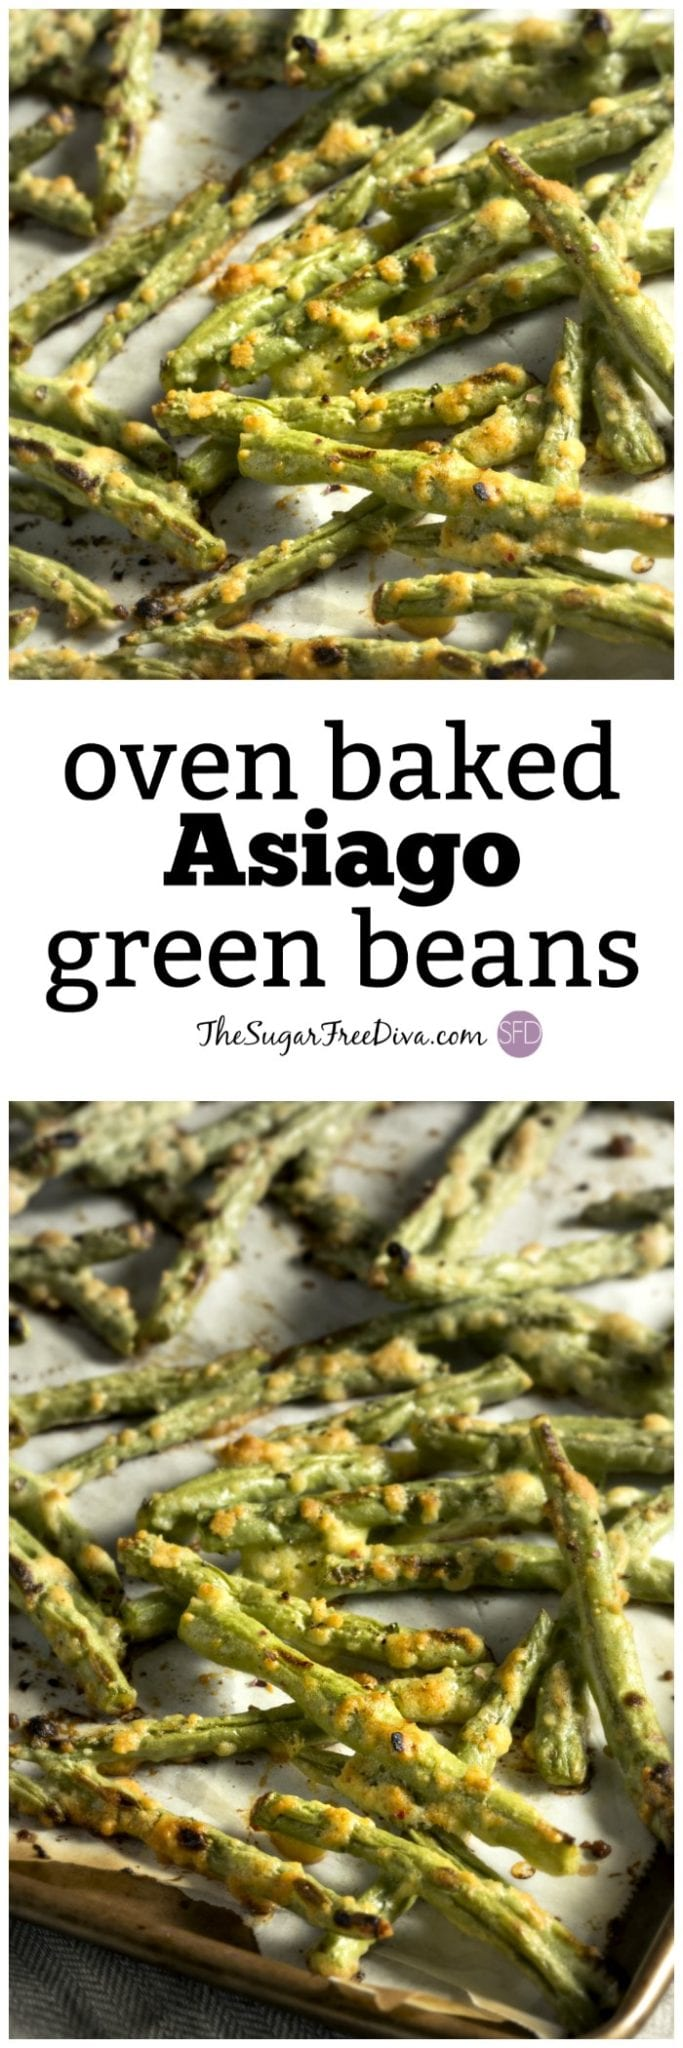 oven baked asiago green beans